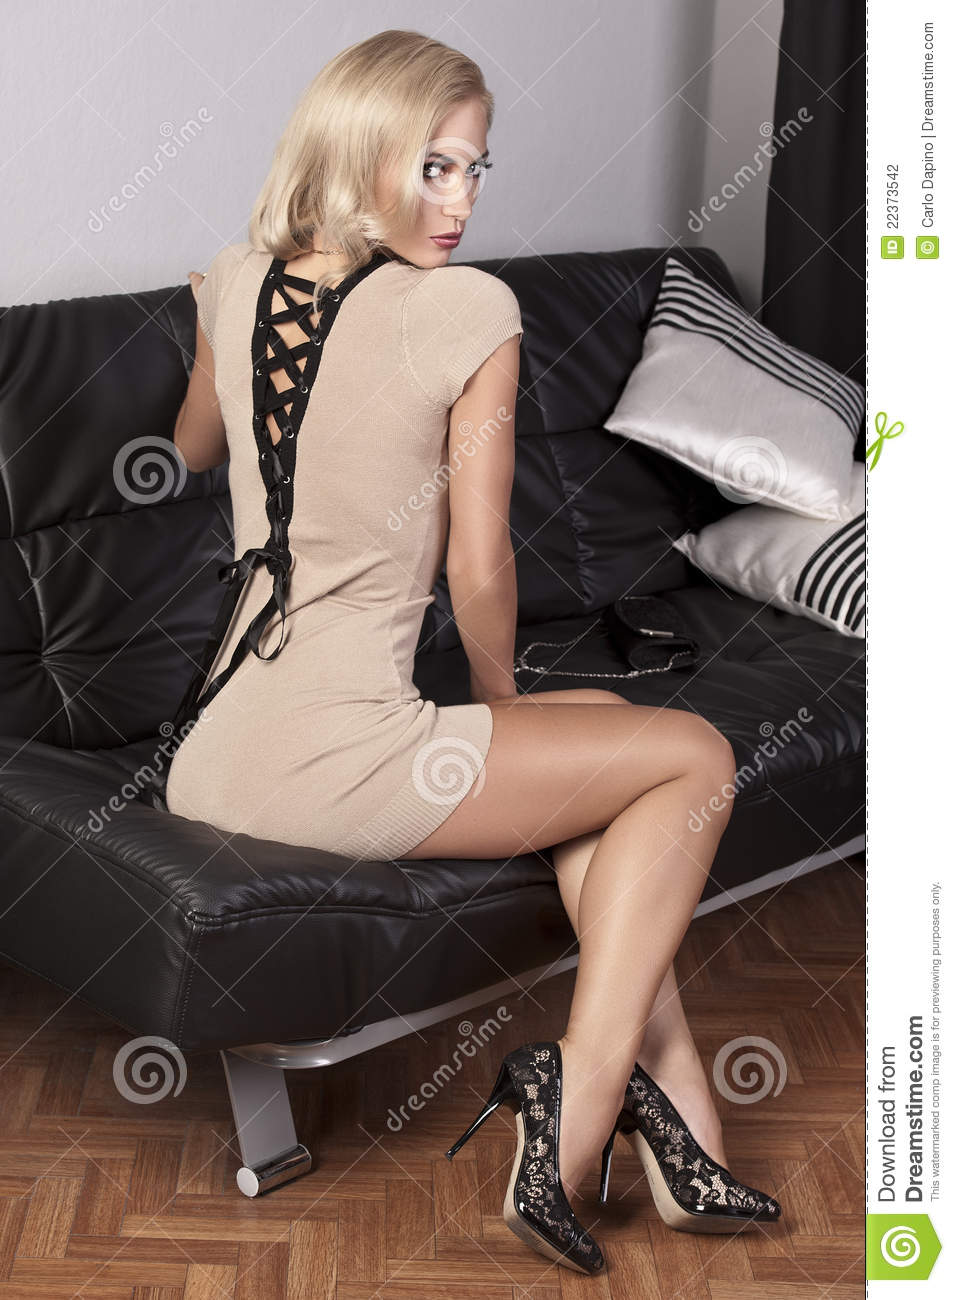 Sensual Girl Sitting On A Black Leather Sofa Stock Photography Image 22373542